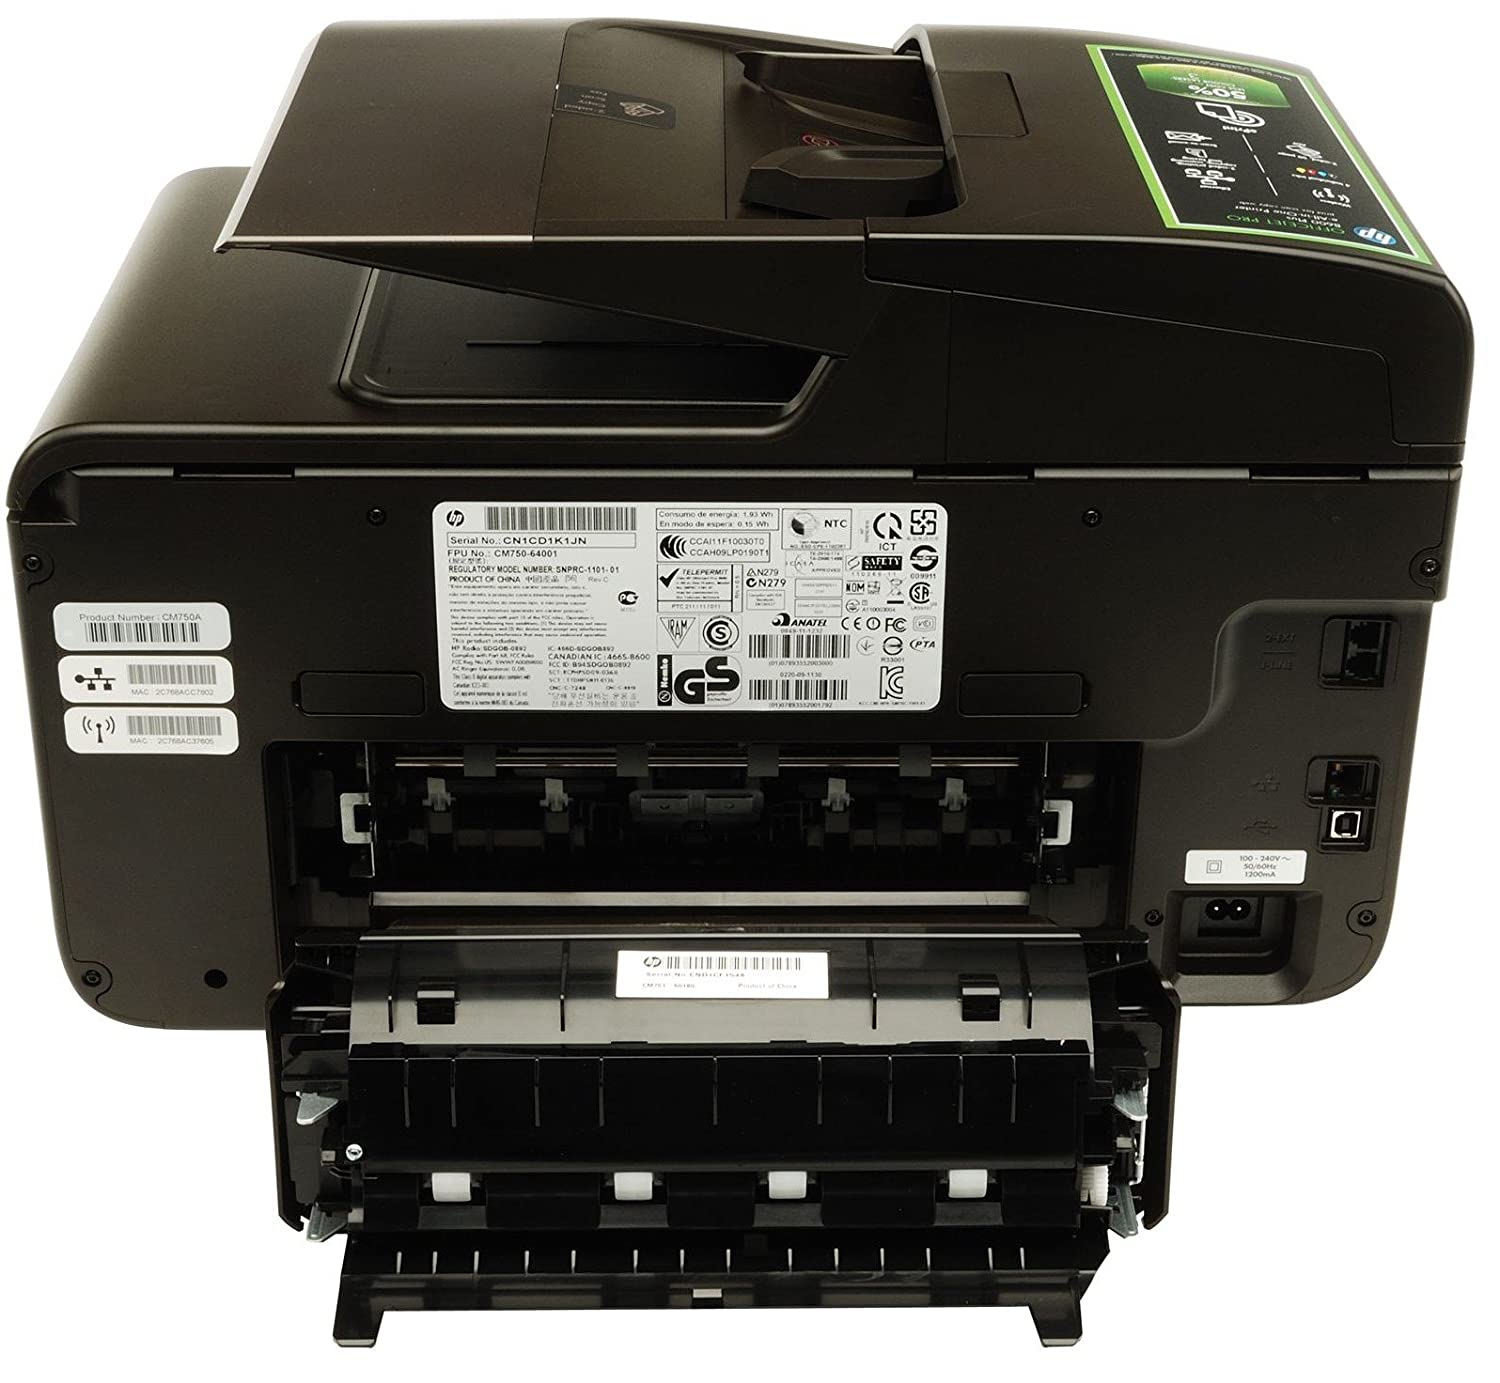 Amazon.com: HP Officejet Pro 8600 Plus e-All-in-One Printer (Discontinued  by Manufacturer): Electronics